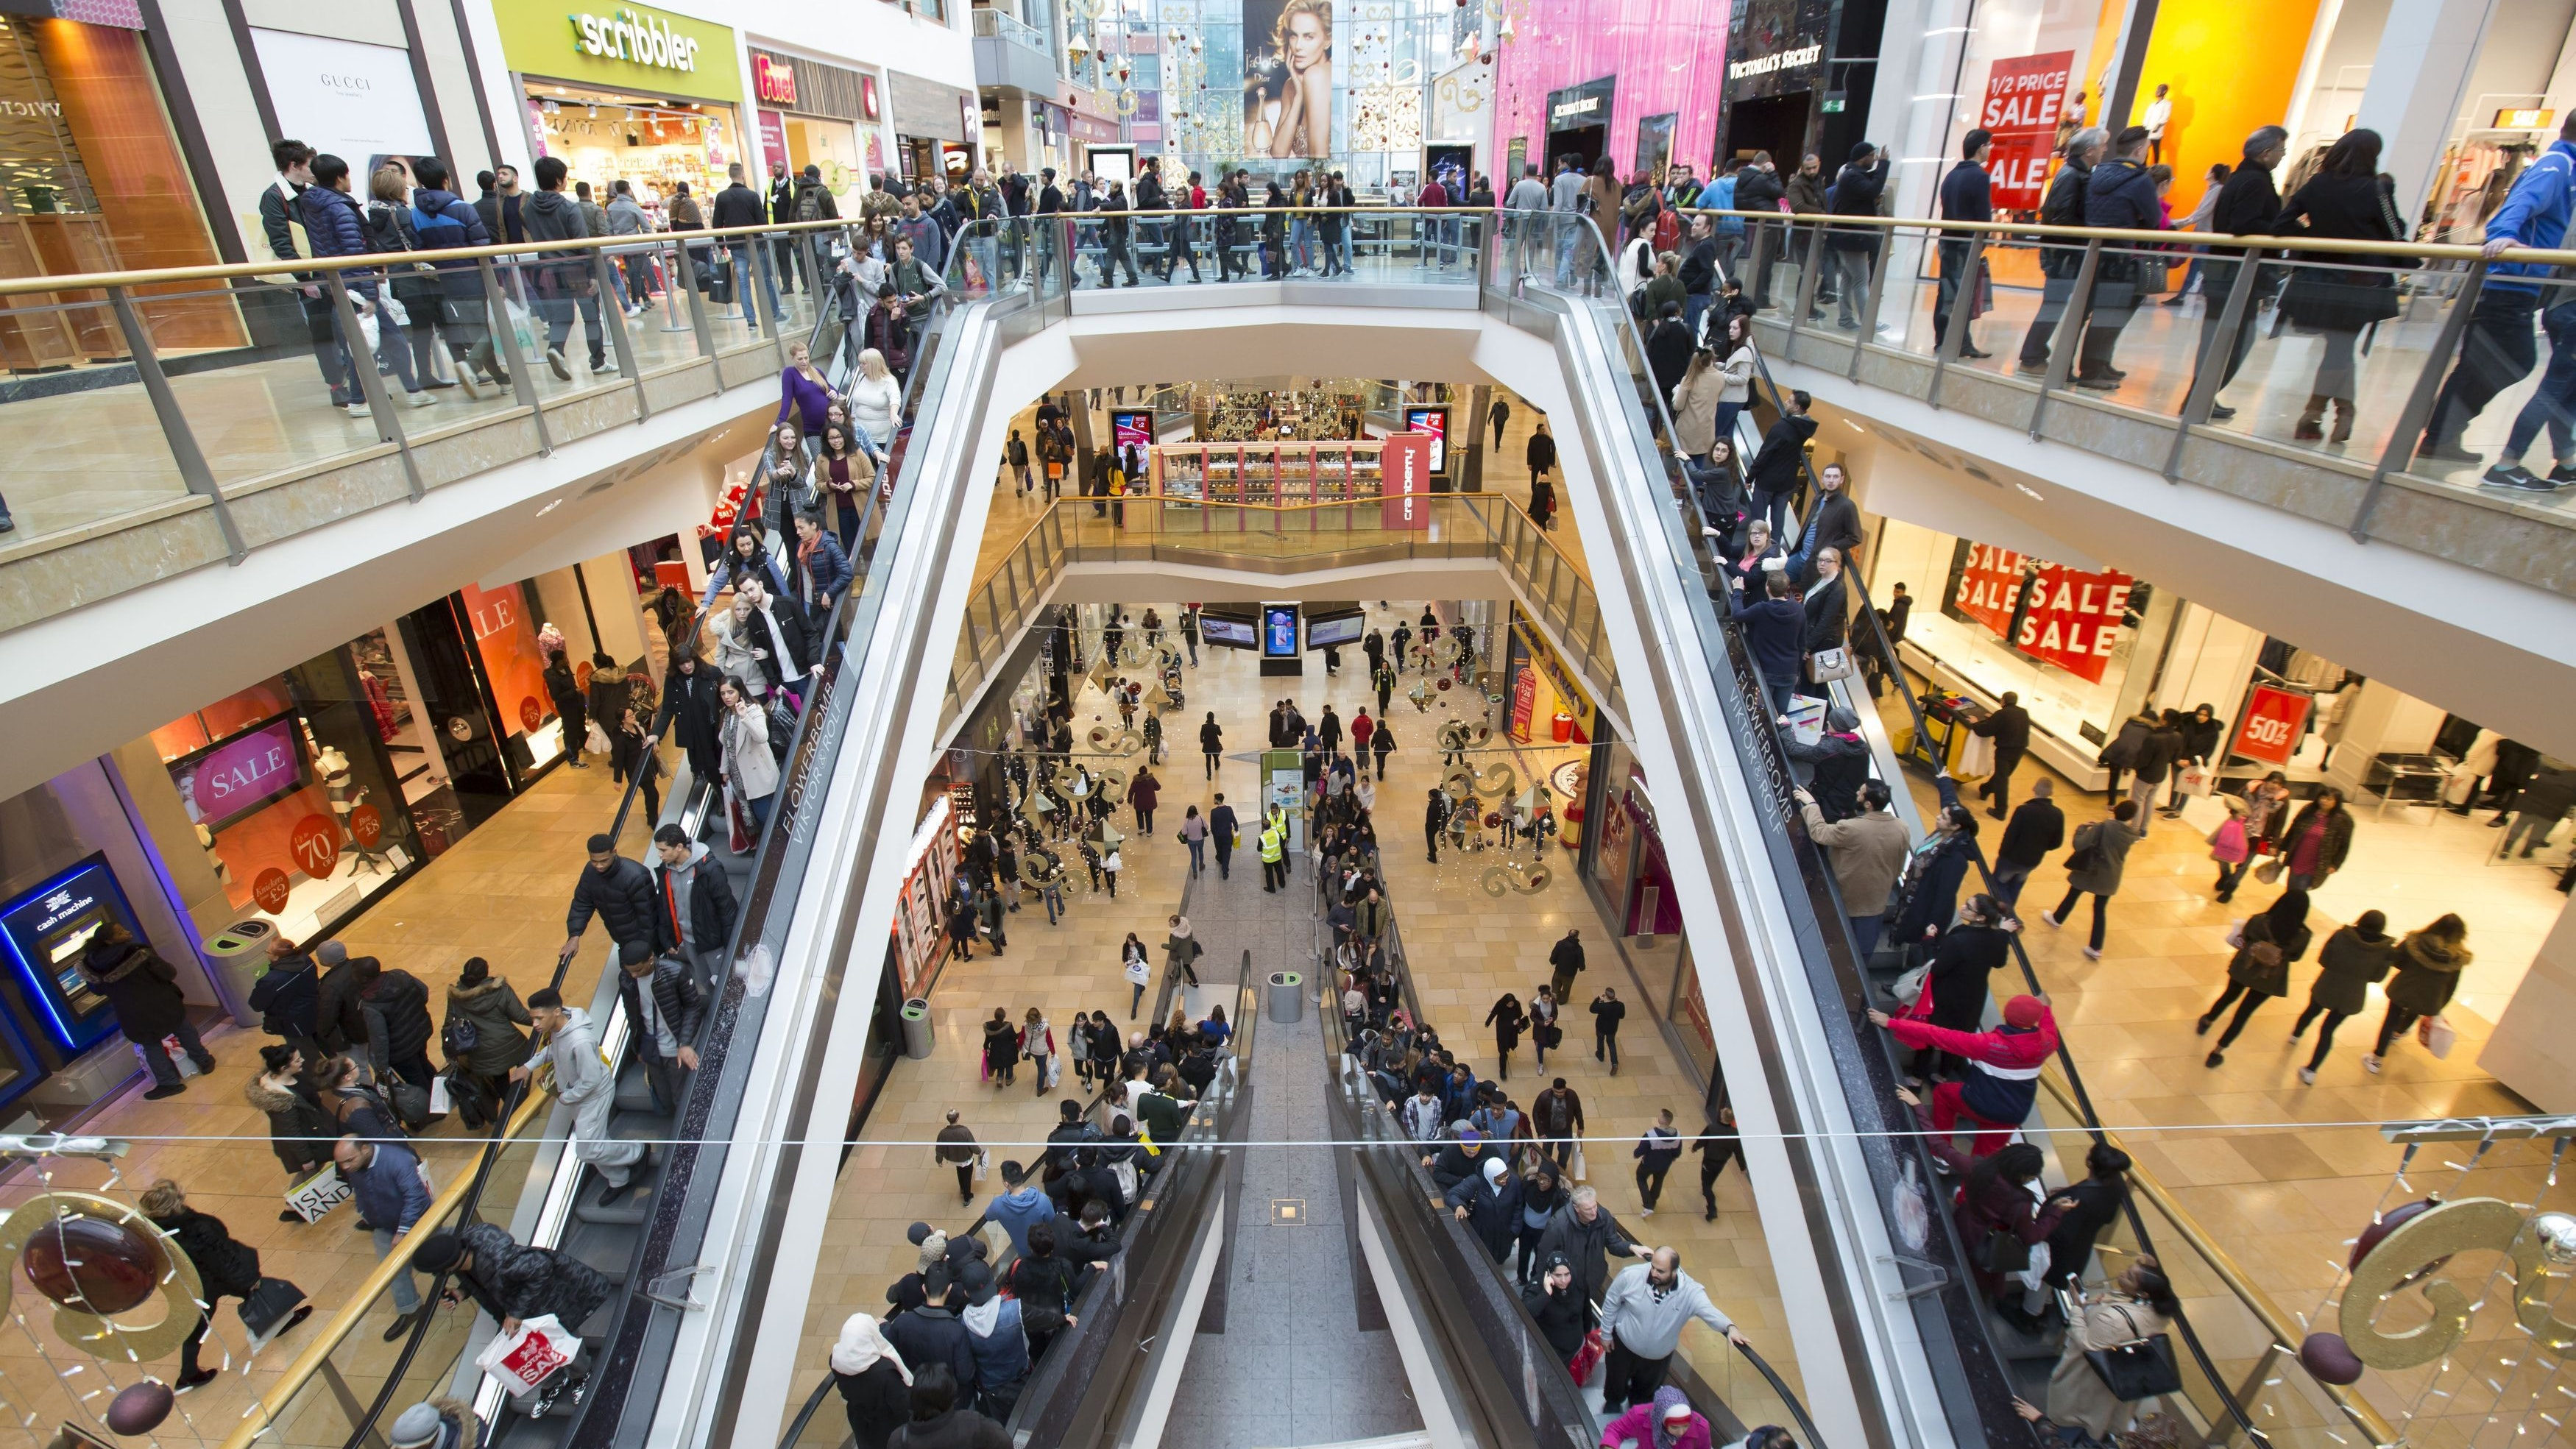 Owner of Highcross shopping centre rejects £5bn takeover bid